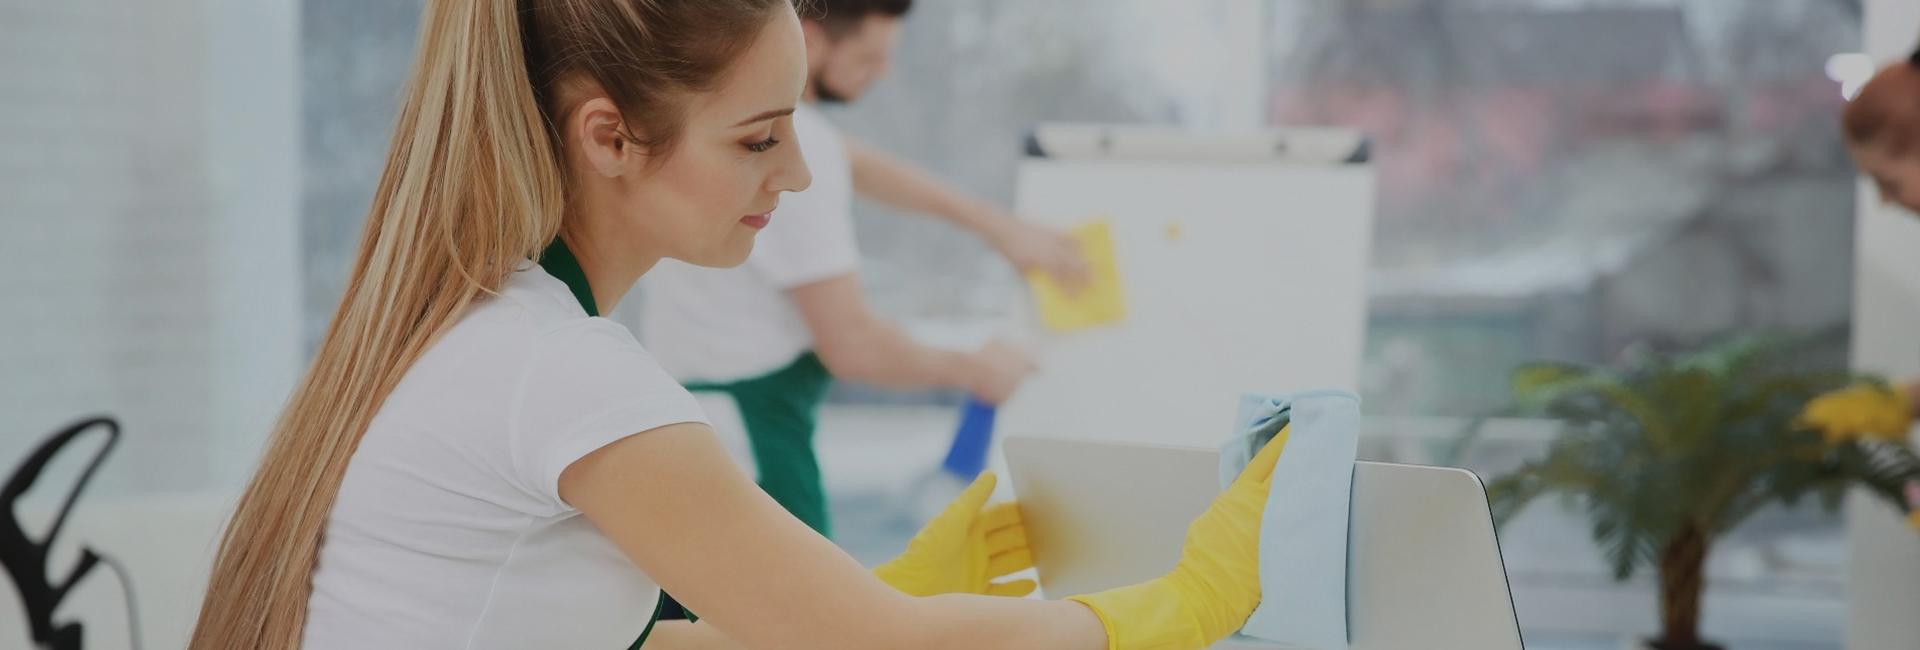 Commercial Cleaning Company Jacksonville Florida